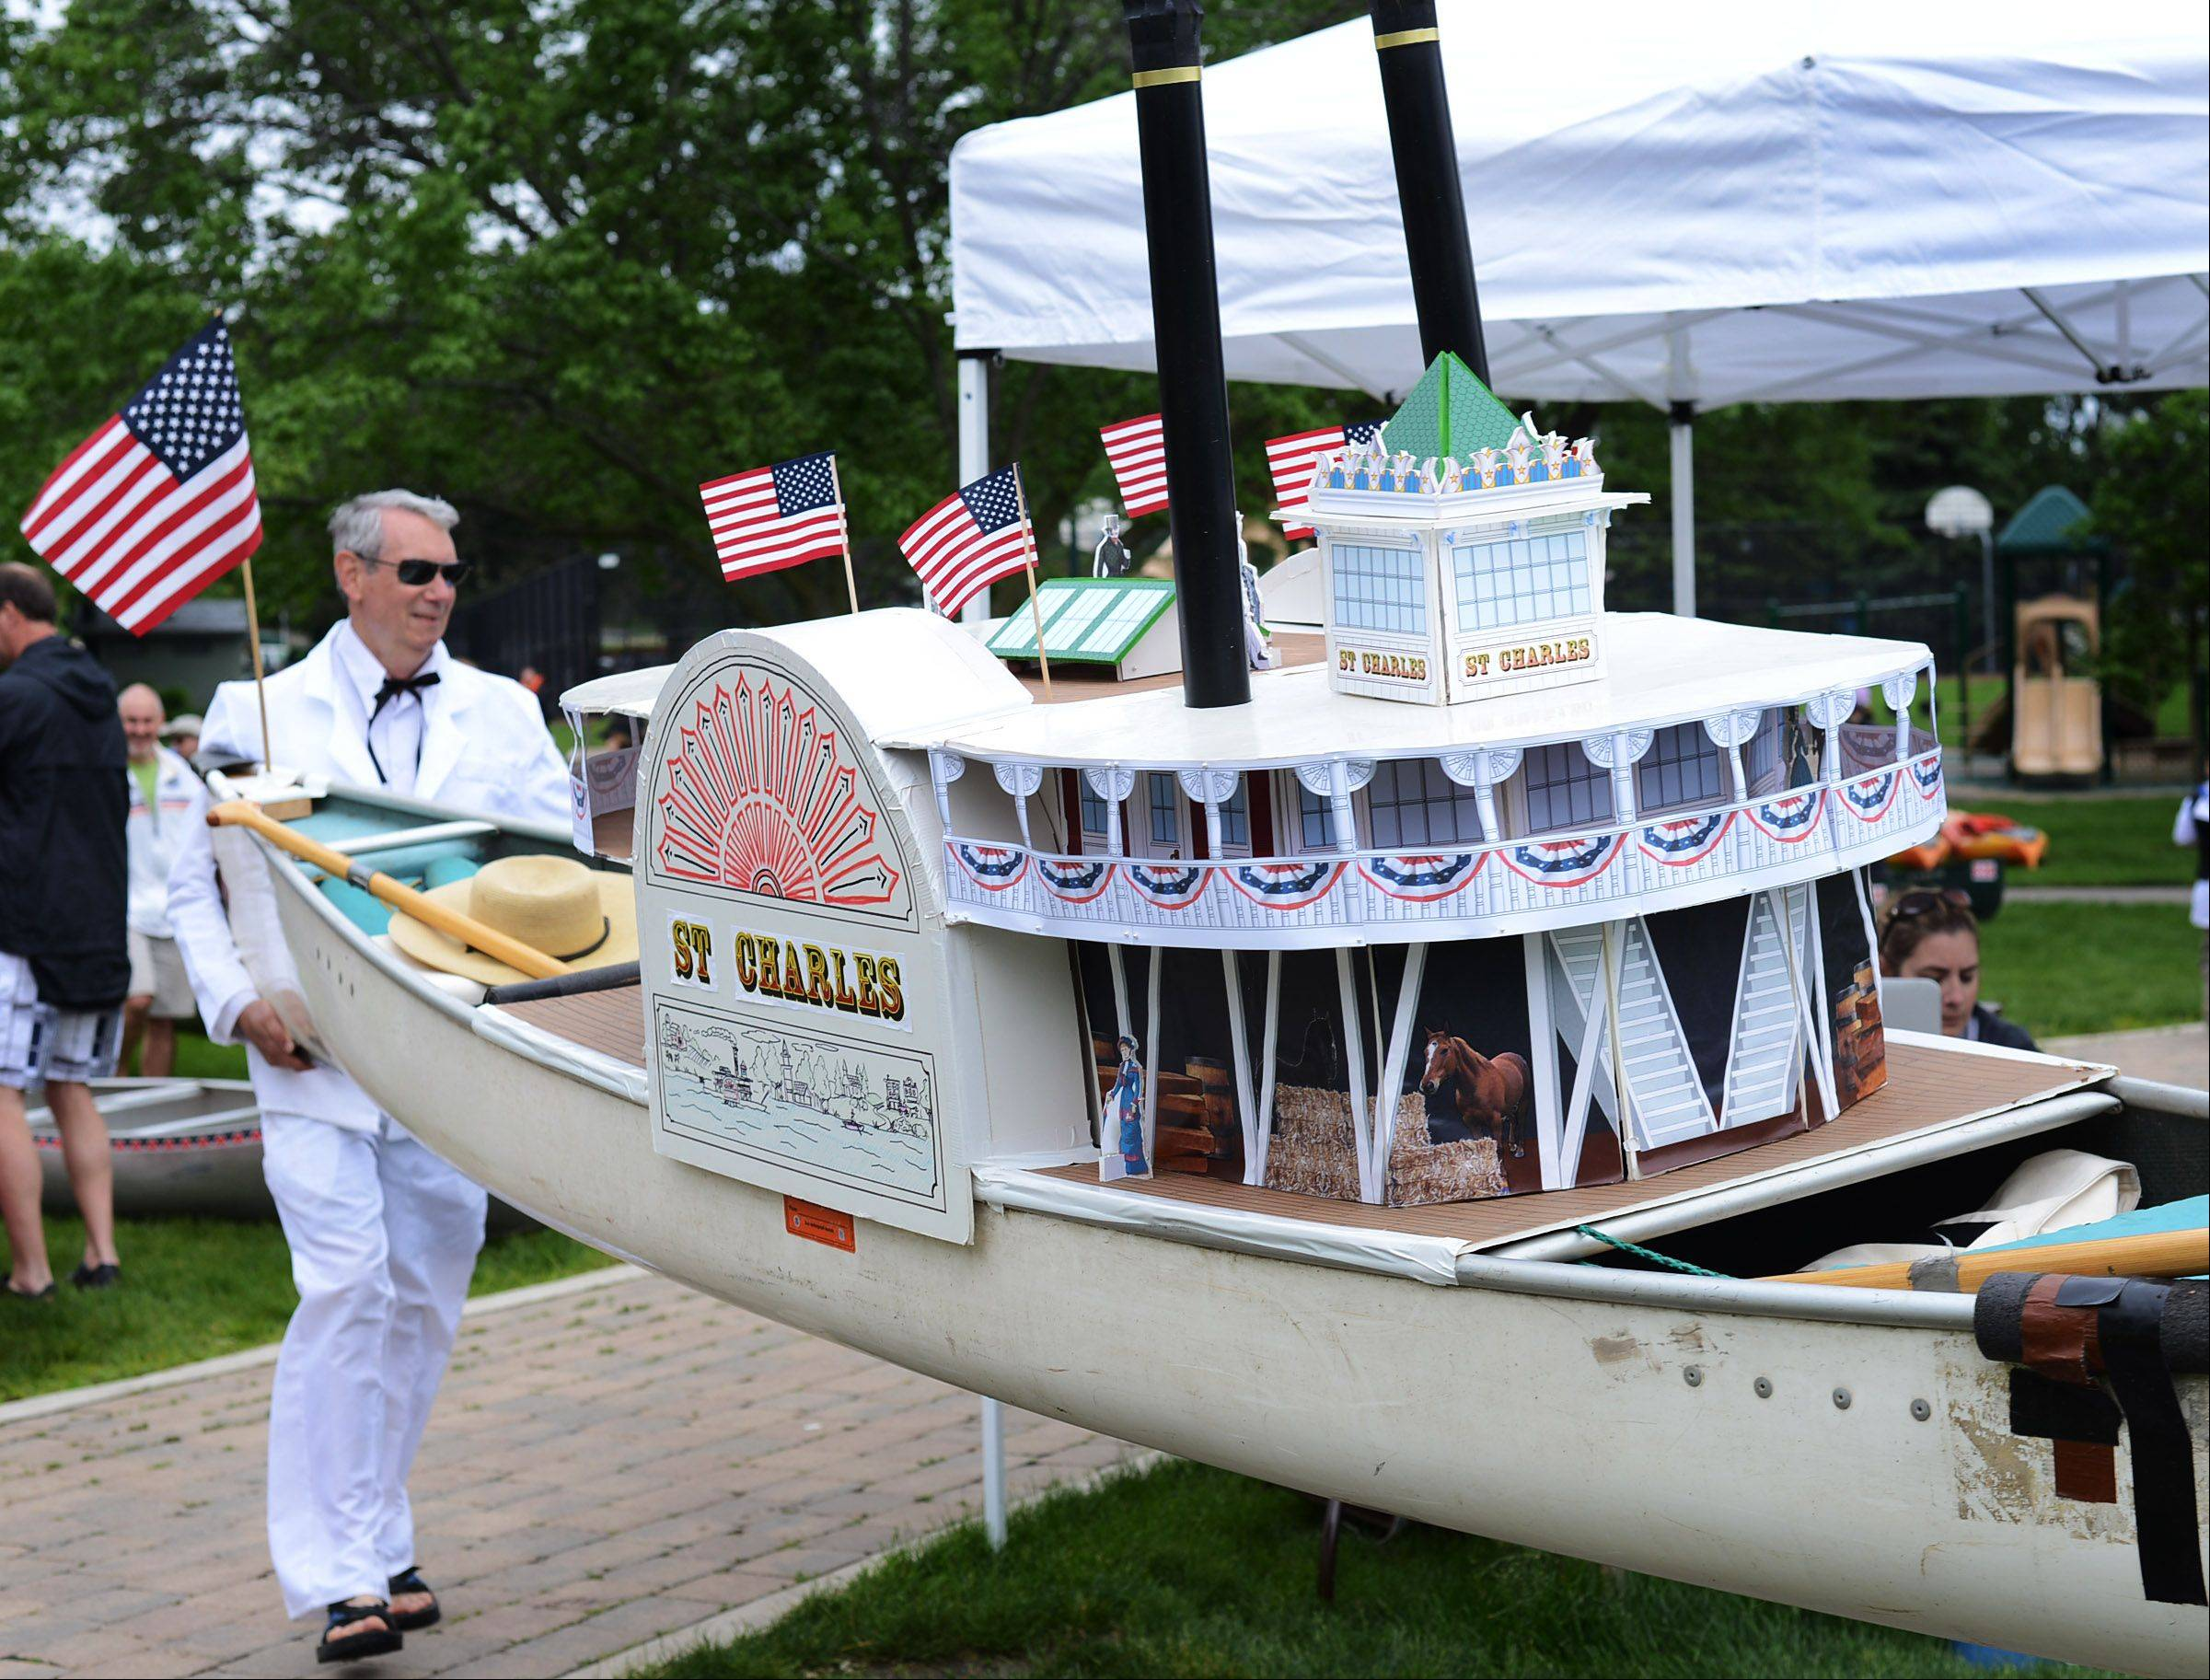 Dressed as Mark Twain, Martin Cassell launches his canoe into the Fox River in St. Charles on Sunday for the 52nd Mid-American Canoe and Kayak Race. He and his son have been paddling together for 29 years.